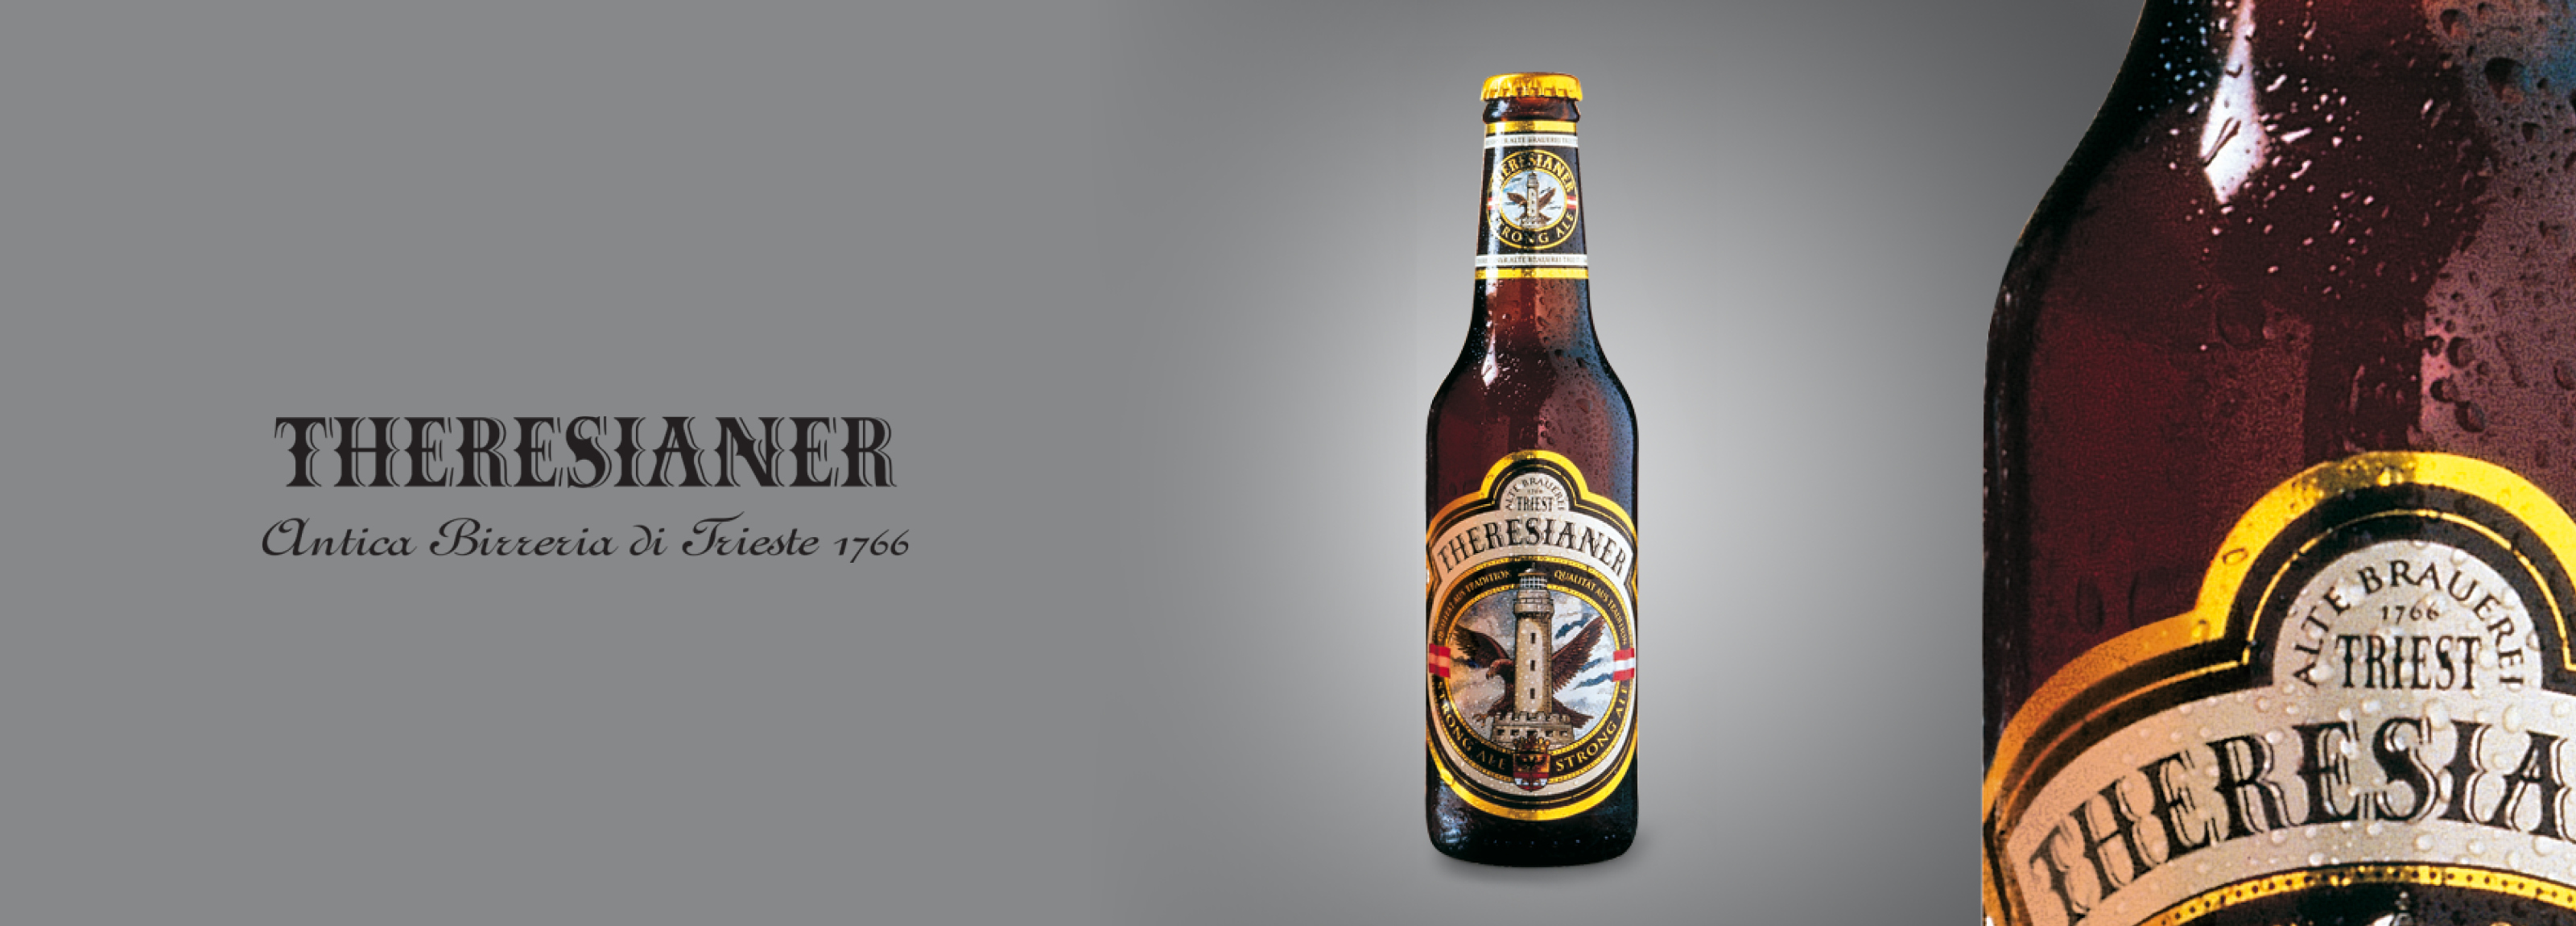 Theresianer - Theresianer <br> Italian Beer